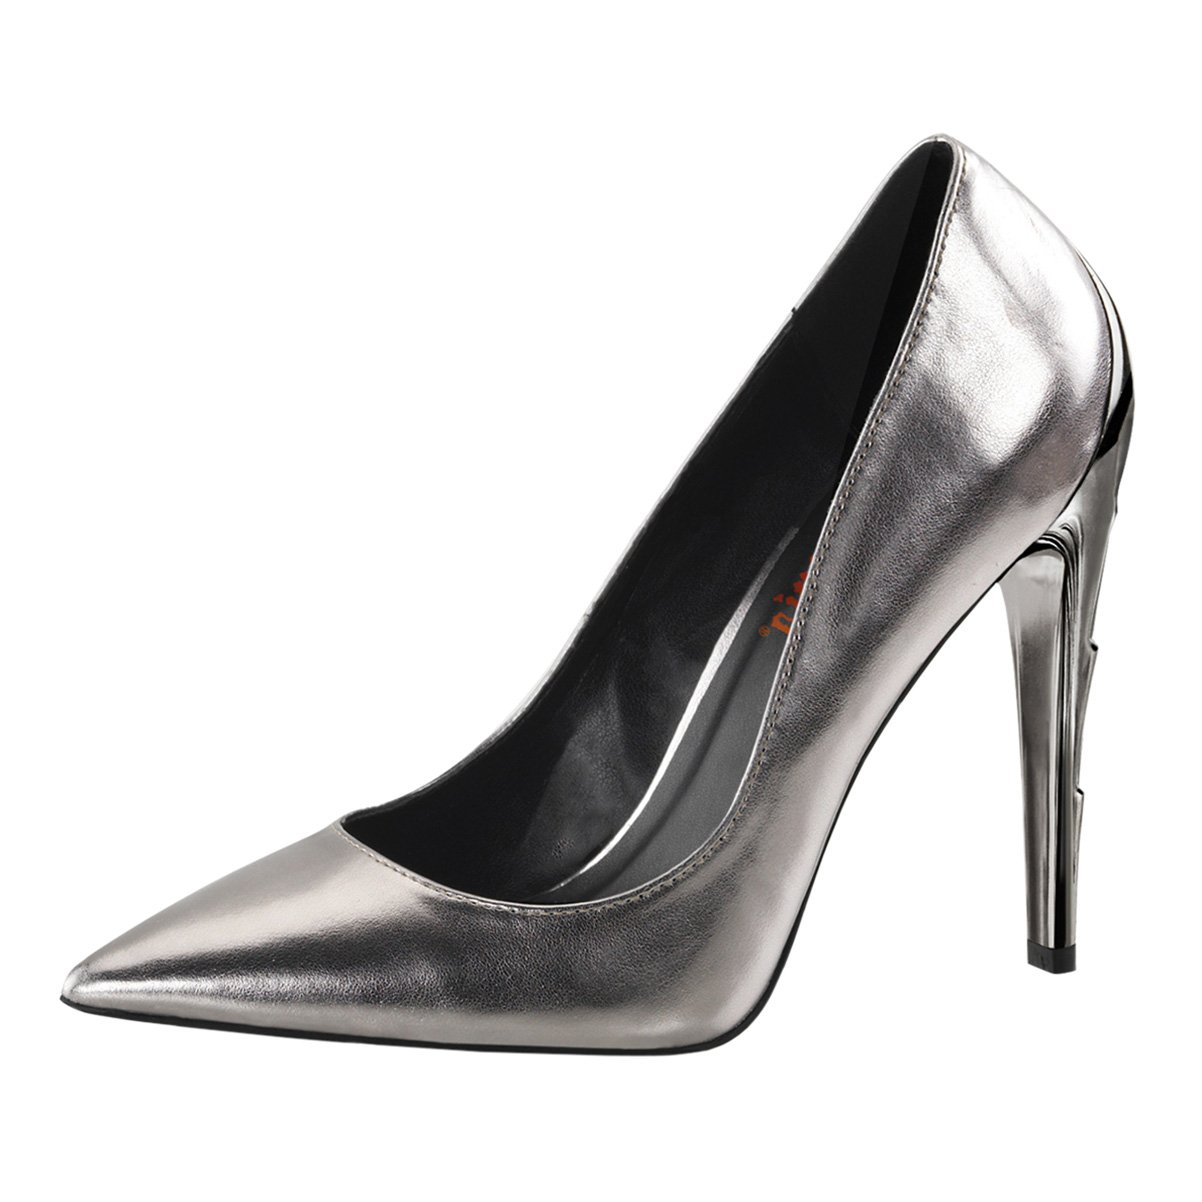 Womens Pointed Toe Heels Pewter Pumps Lightning Bolt Shoes 4 1//2 Inch Heels